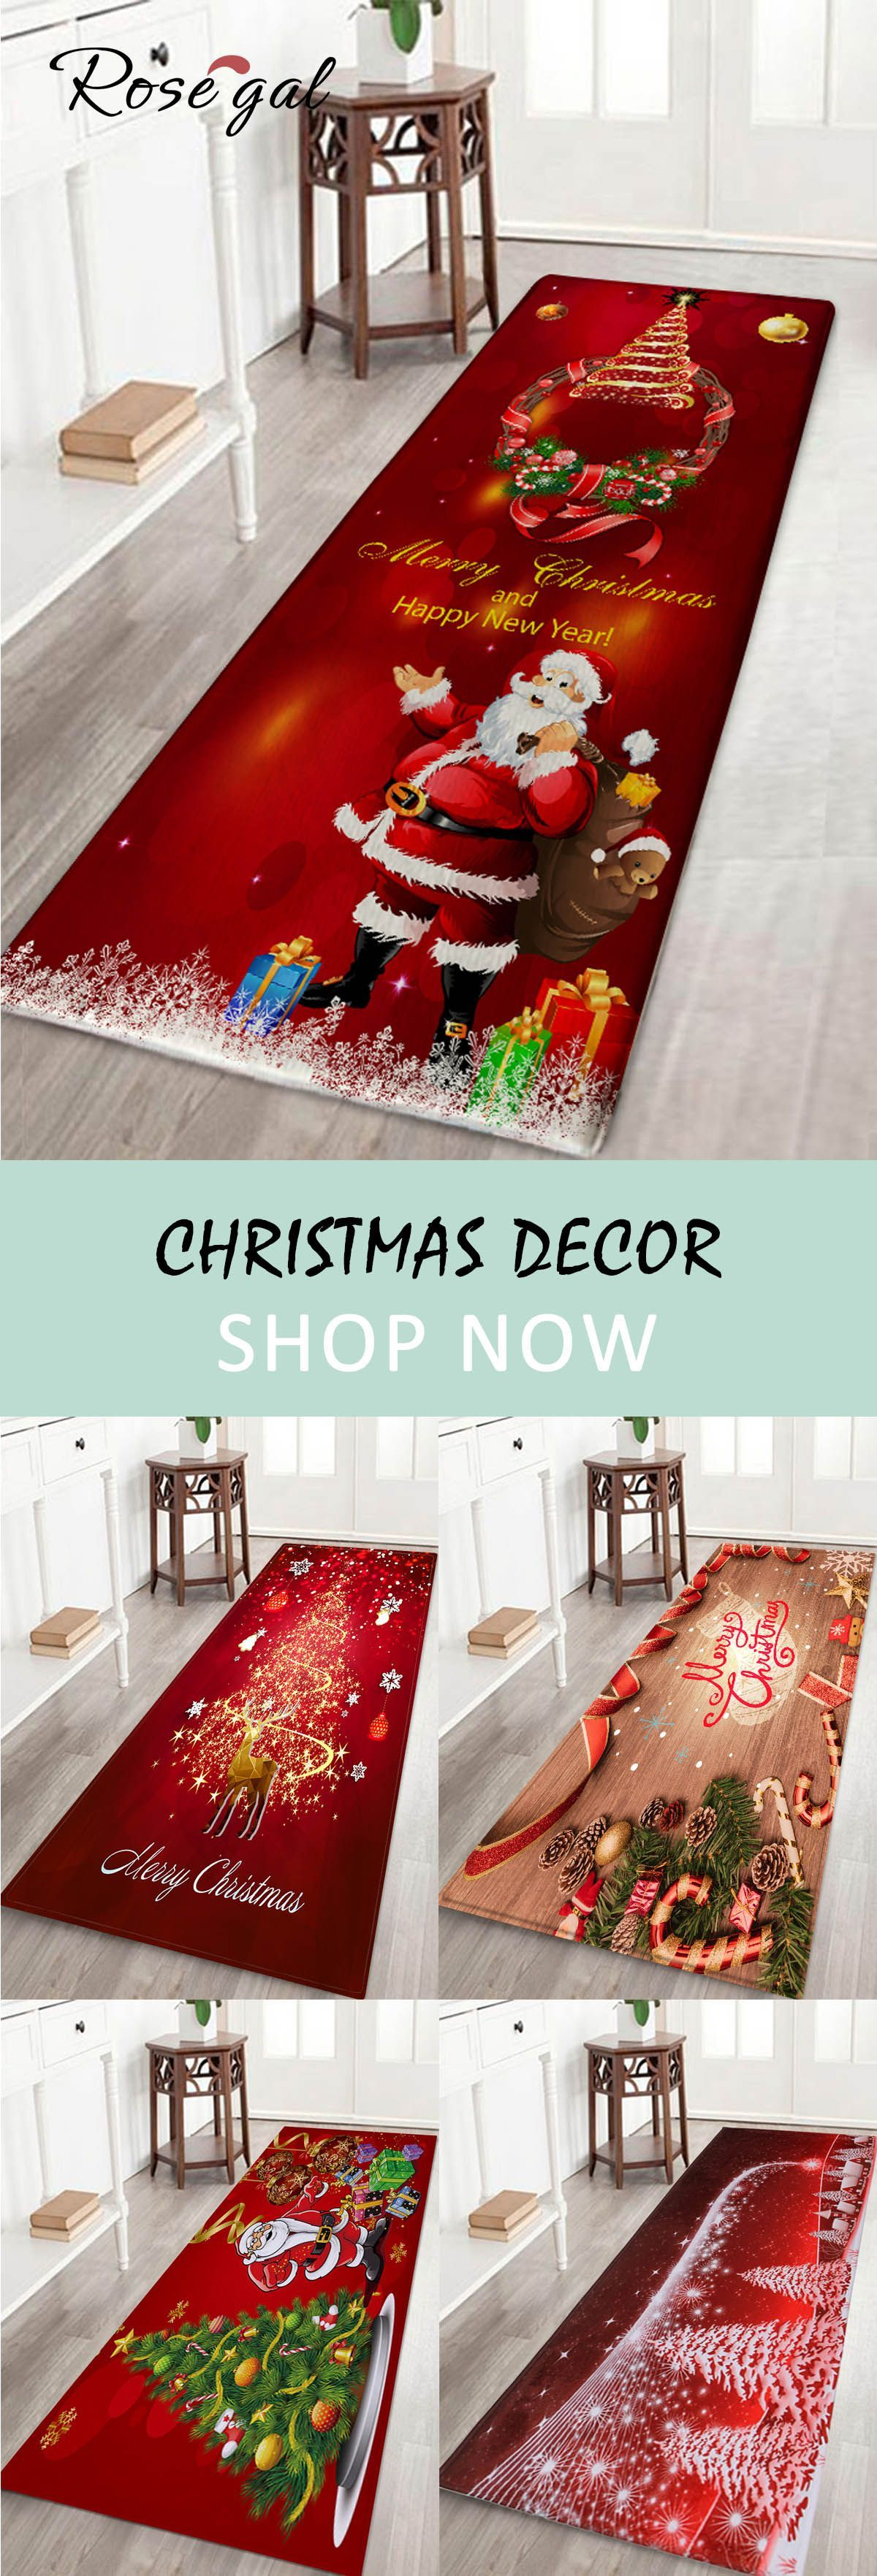 Up To 80 Off Rosegal Christmas Home Decor Floor Decoration Holiday Style Shower Mats Entrance Mats Bathroom Rugs Christmas Rugs Christmas Home Christmas Deco